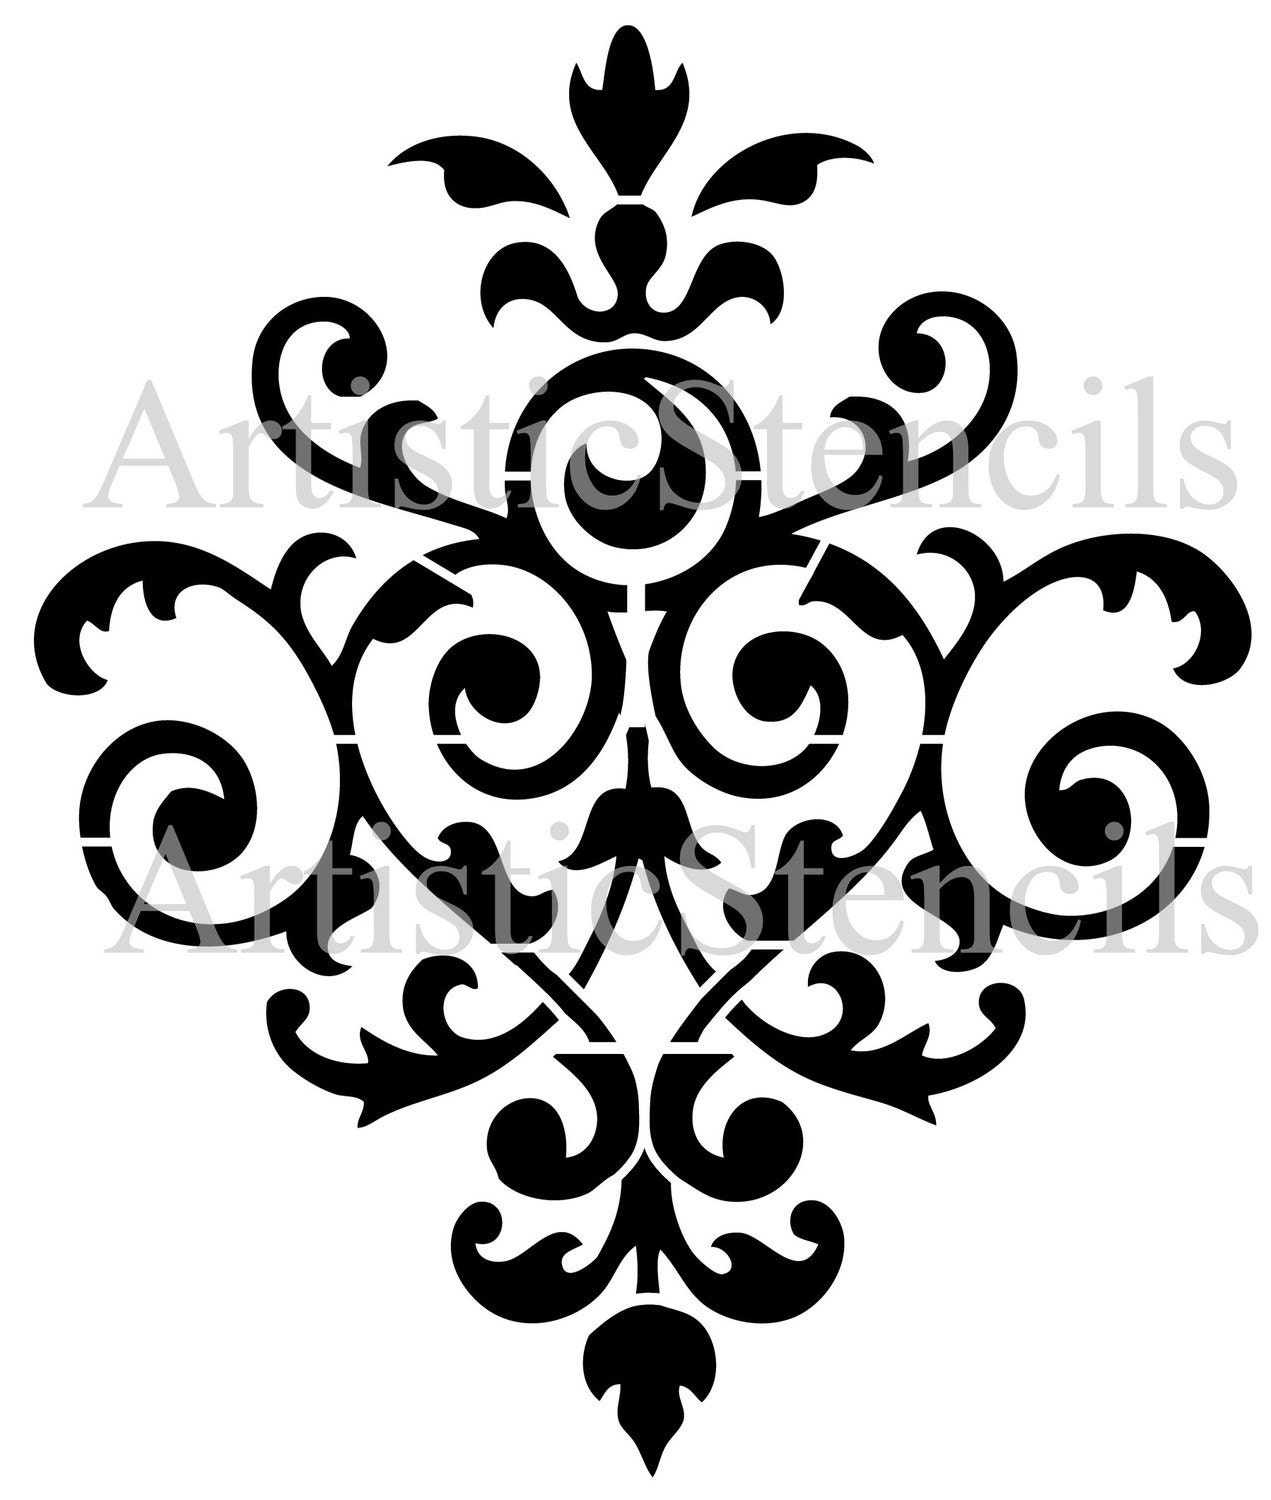 343962490261370046 further Geometric Coloring Pages besides Printable Fruit Basket Coloring Pages together with 525373112750635820 furthermore Post islamic Patterns Coloring Pages 174970. on mosaic patterns art